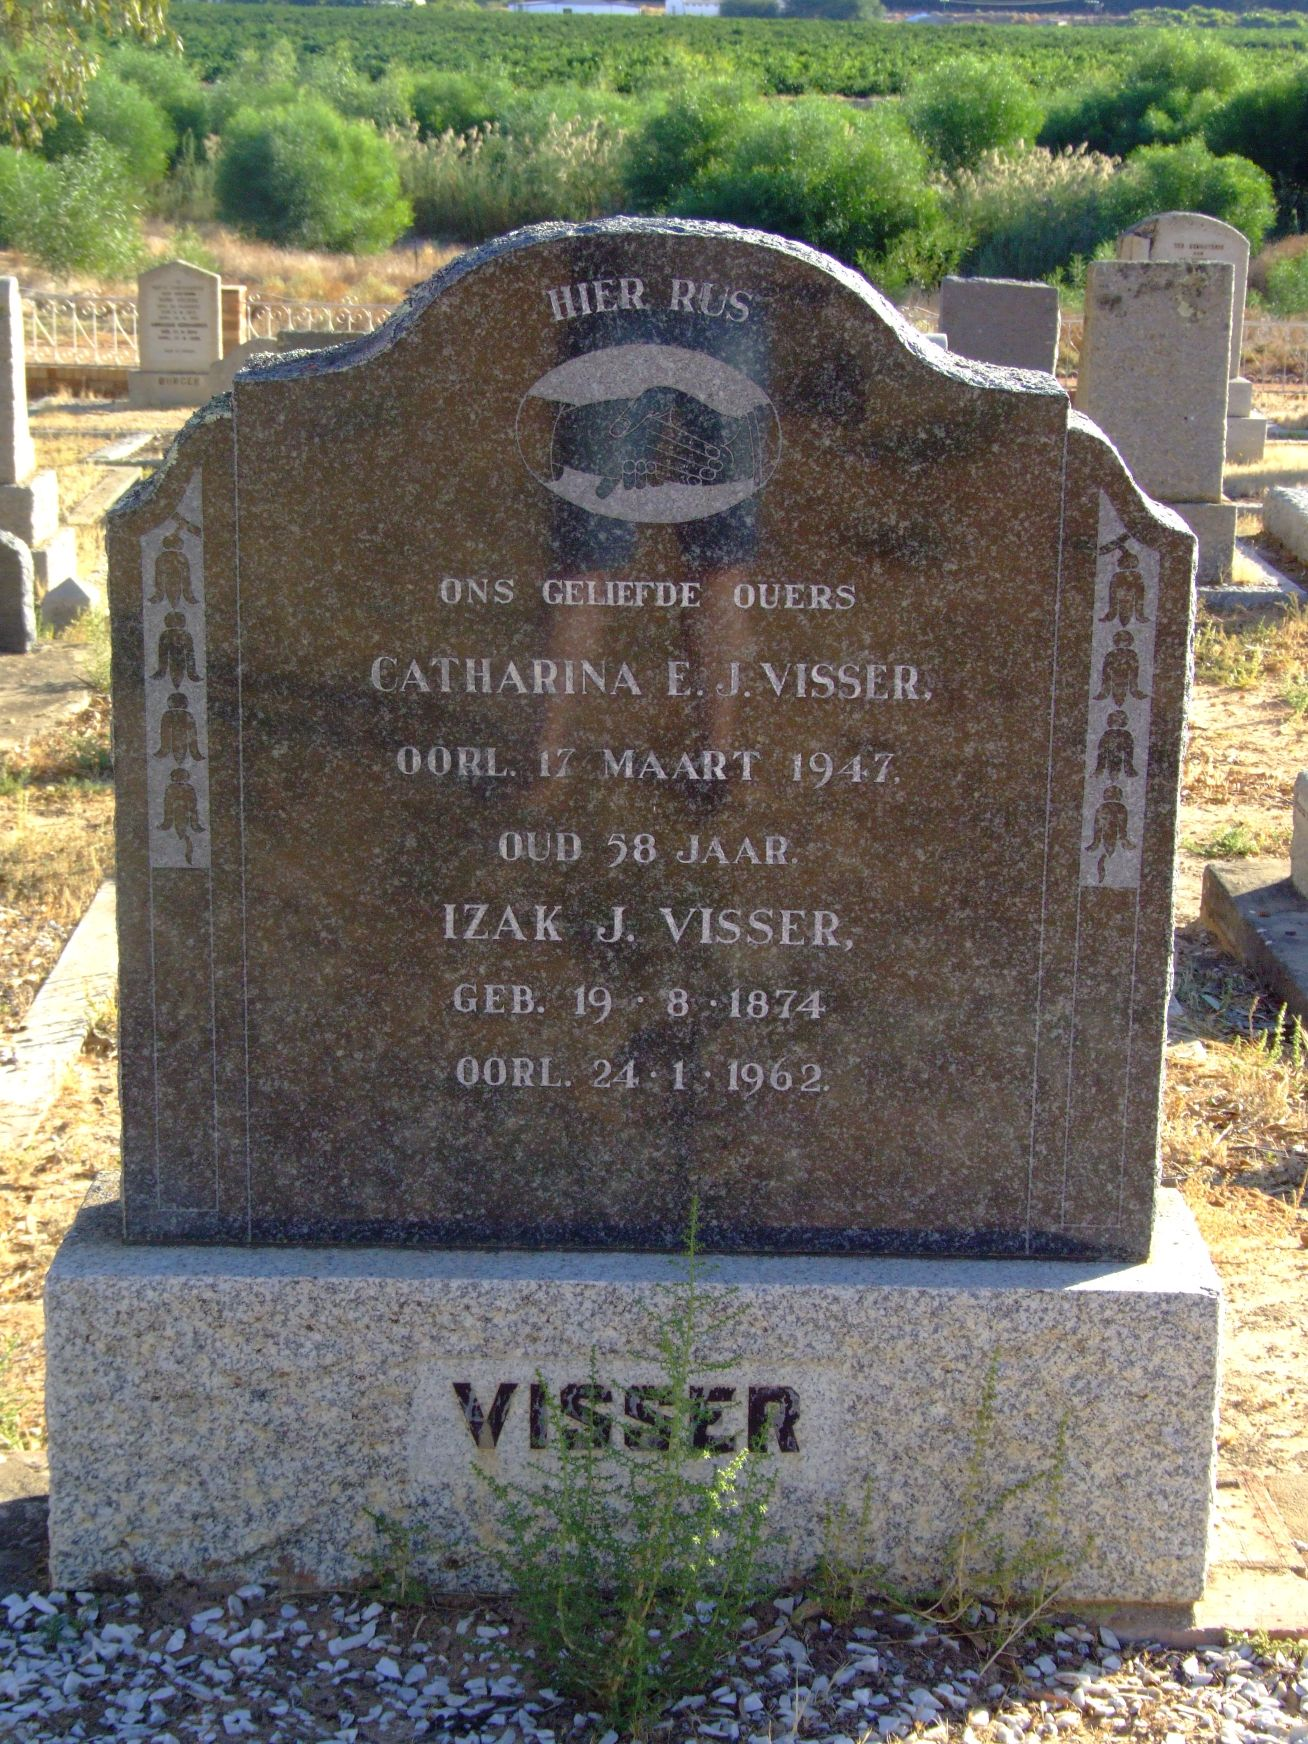 Visser, Catharina E J and Visser, Izak J